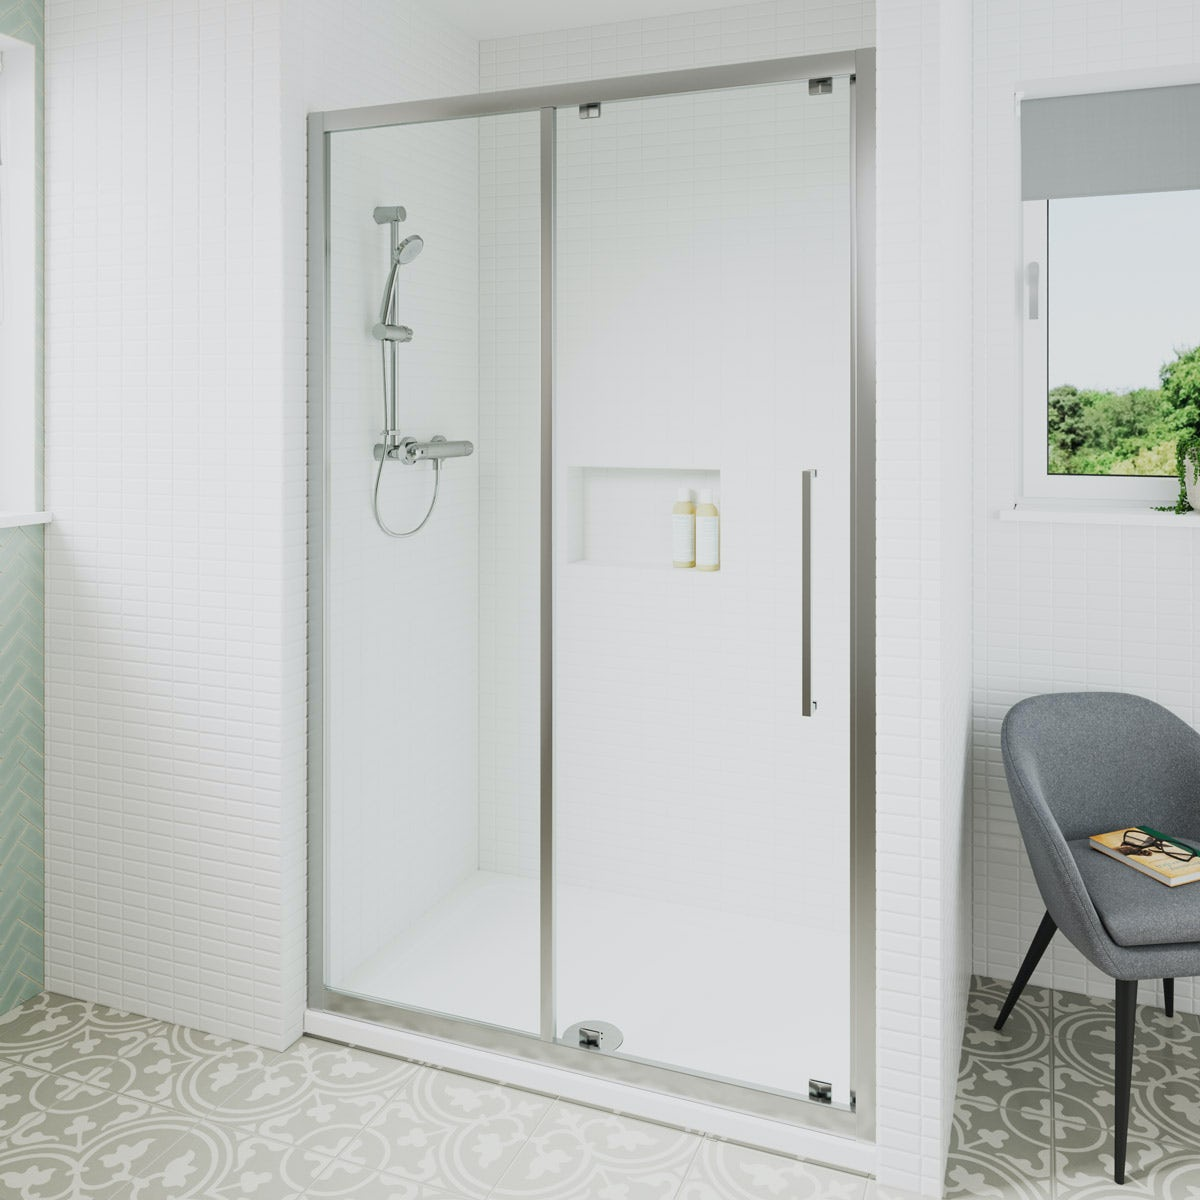 Ideal Standard 6mm sliding door rectangular shower door 1200